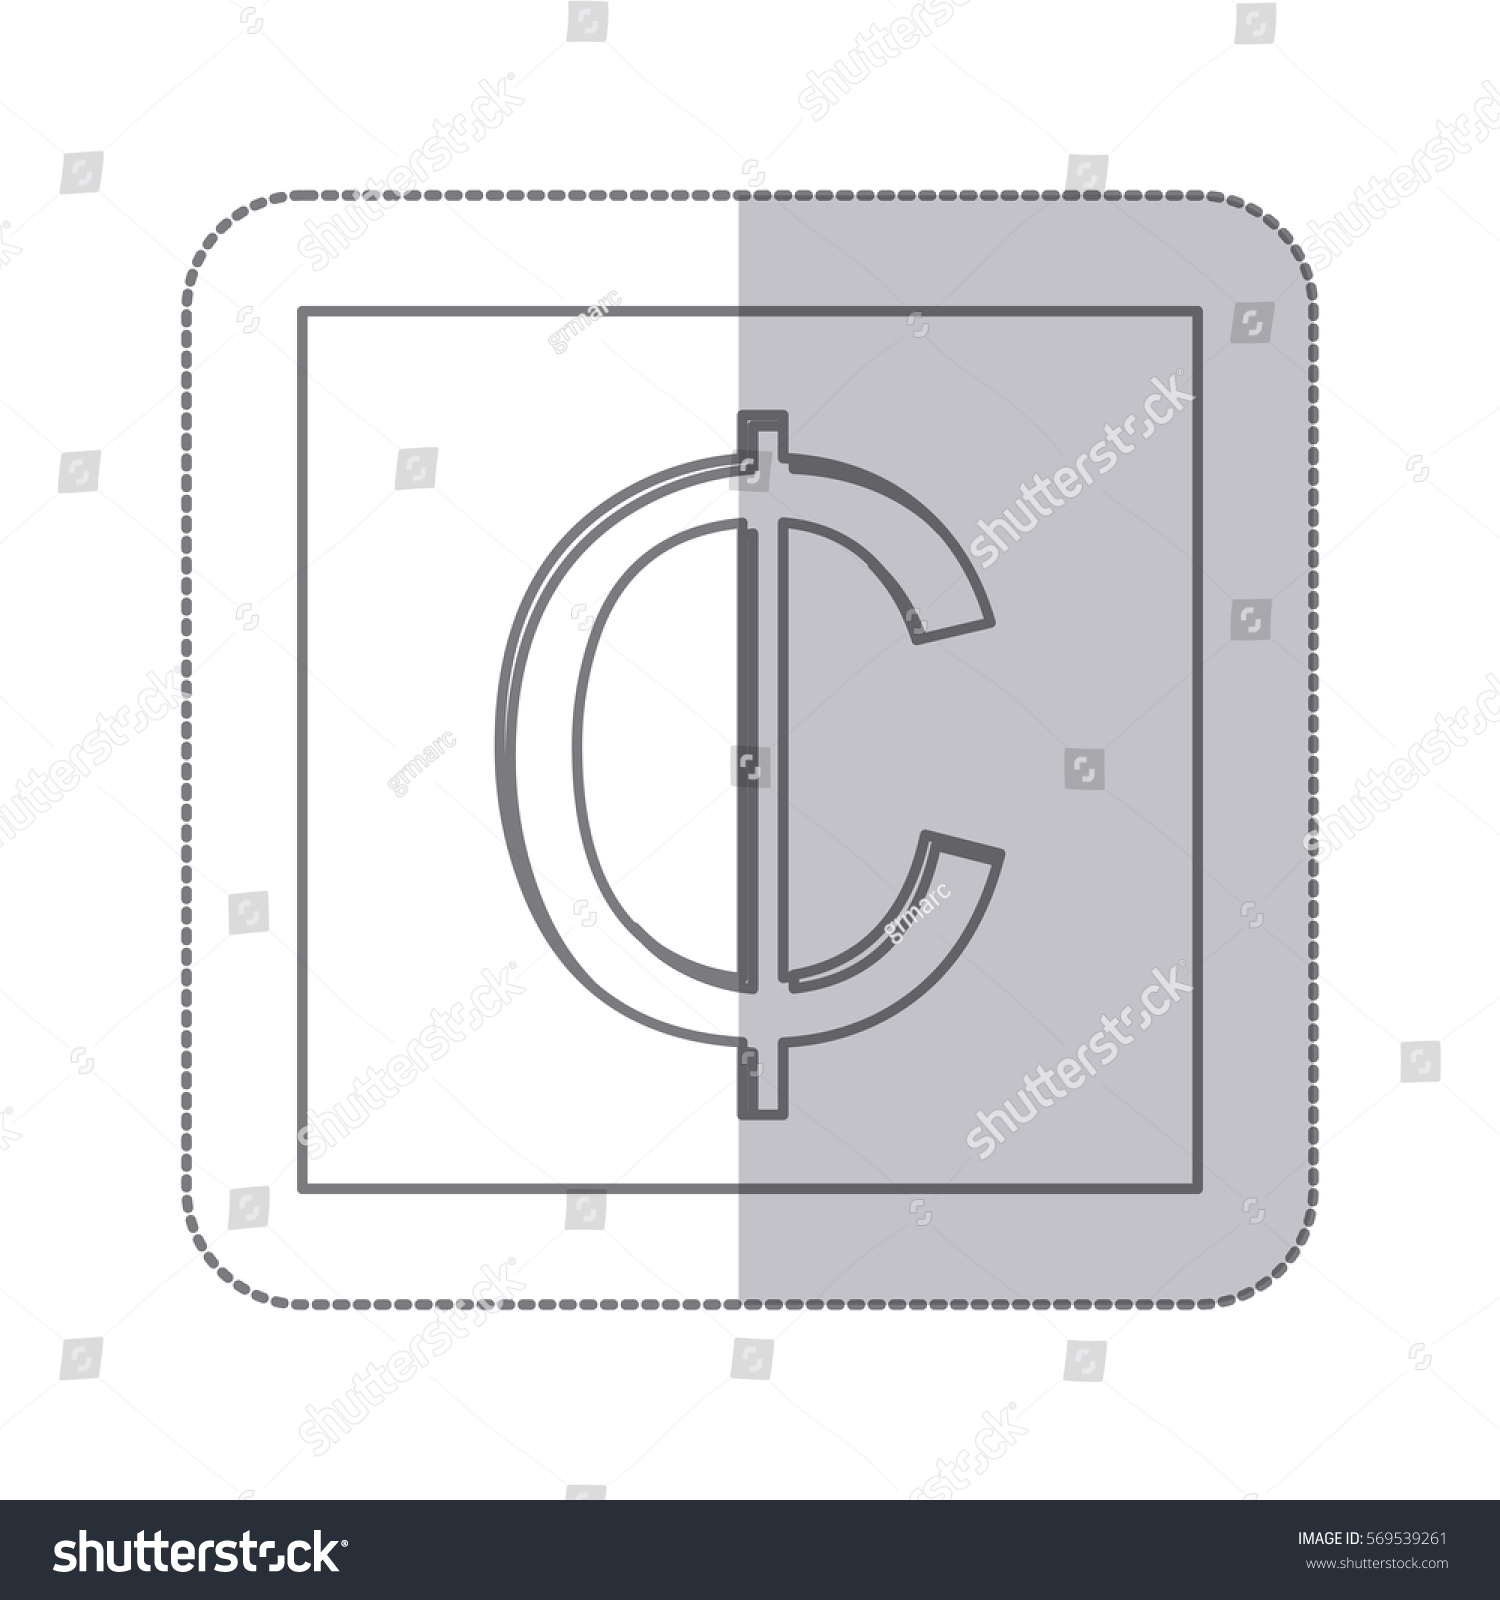 Middle Shadow Monochrome Square Currency Symbol Stock Vector